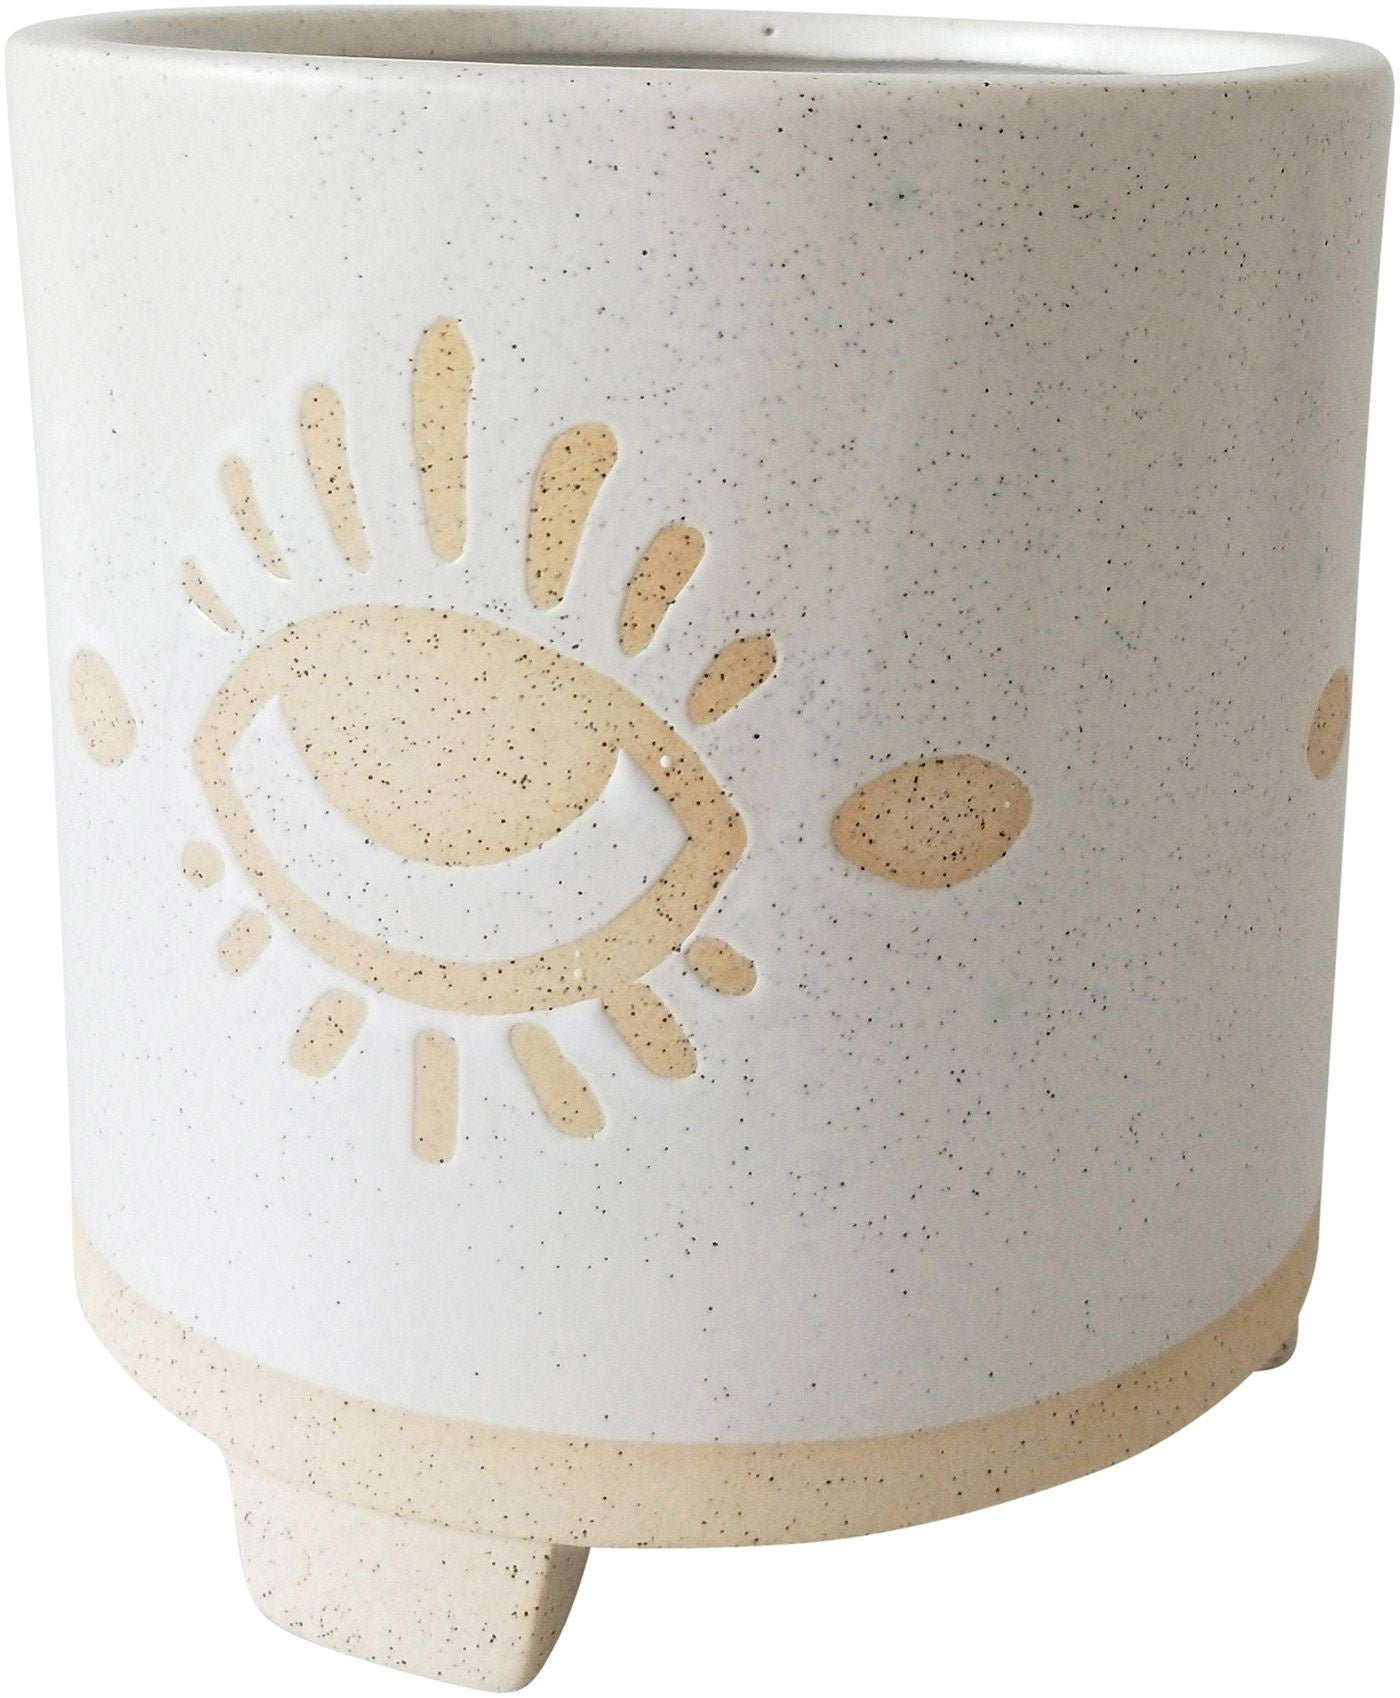 Elemental Eye Planter White Sand Med 15cm